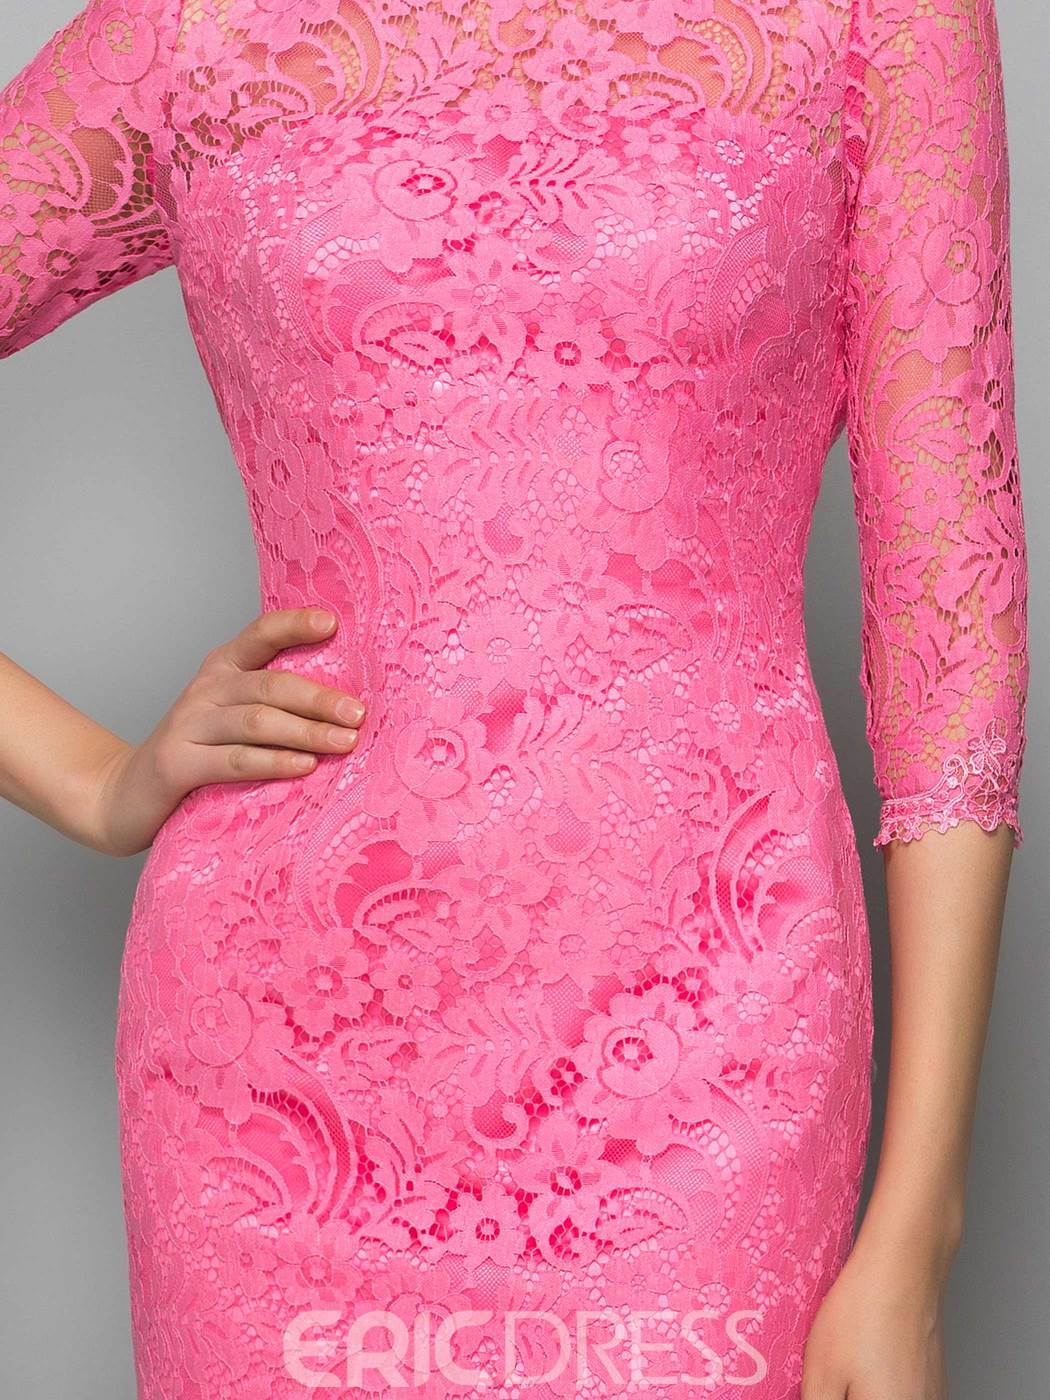 Ericdress Half Sleeves Sheath Backless Lace Cocktail Dress